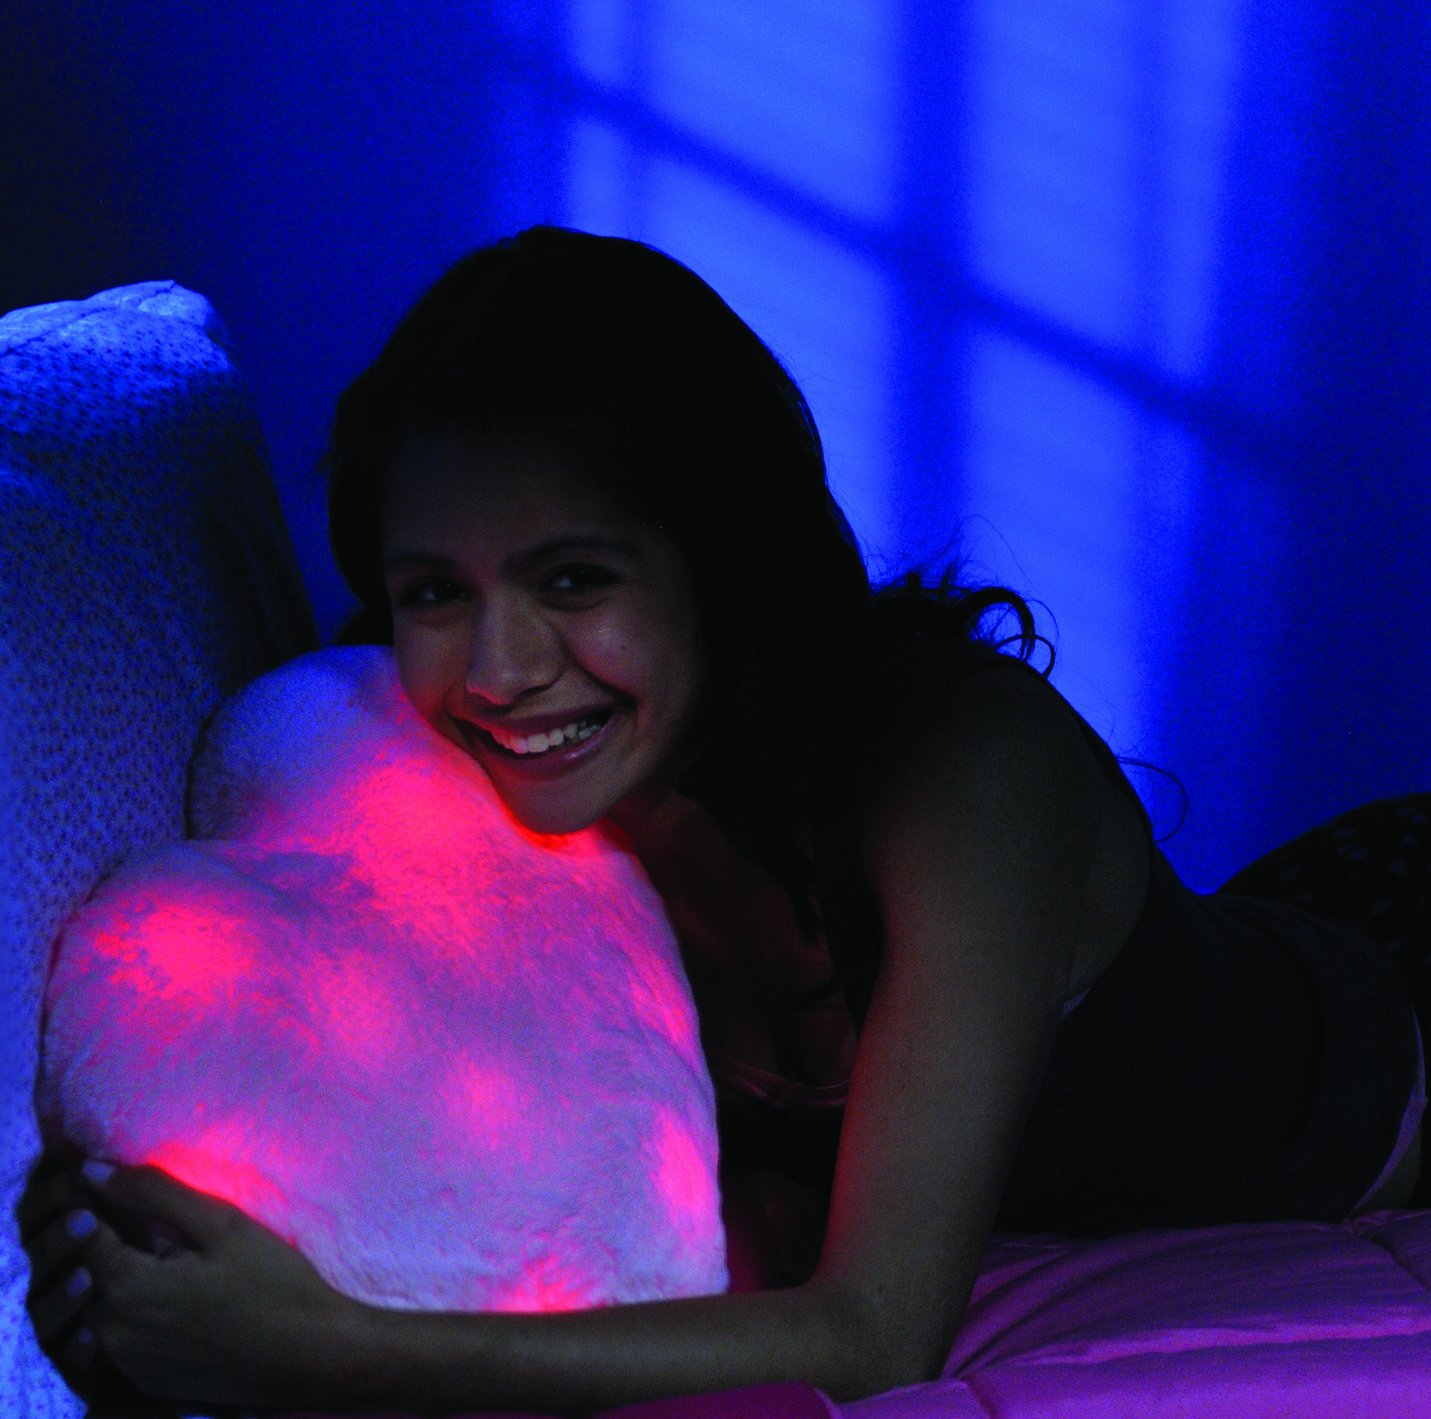 Amazon.com: Bright Light Pillow Beating Heart, Pink: Toys ...